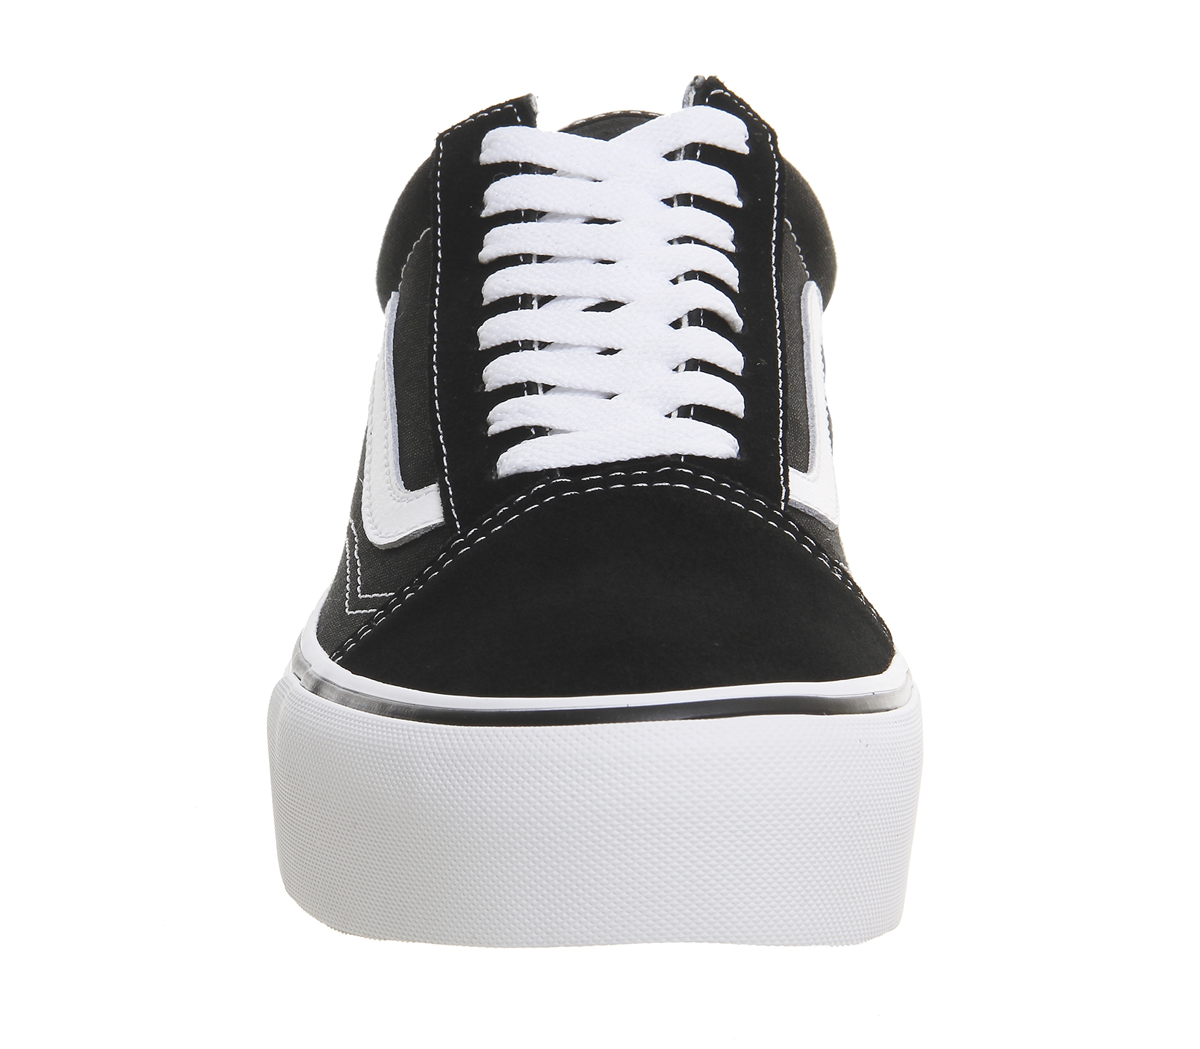 Details about Womens Vans Old Skool Platform Black White Trainers Shoes